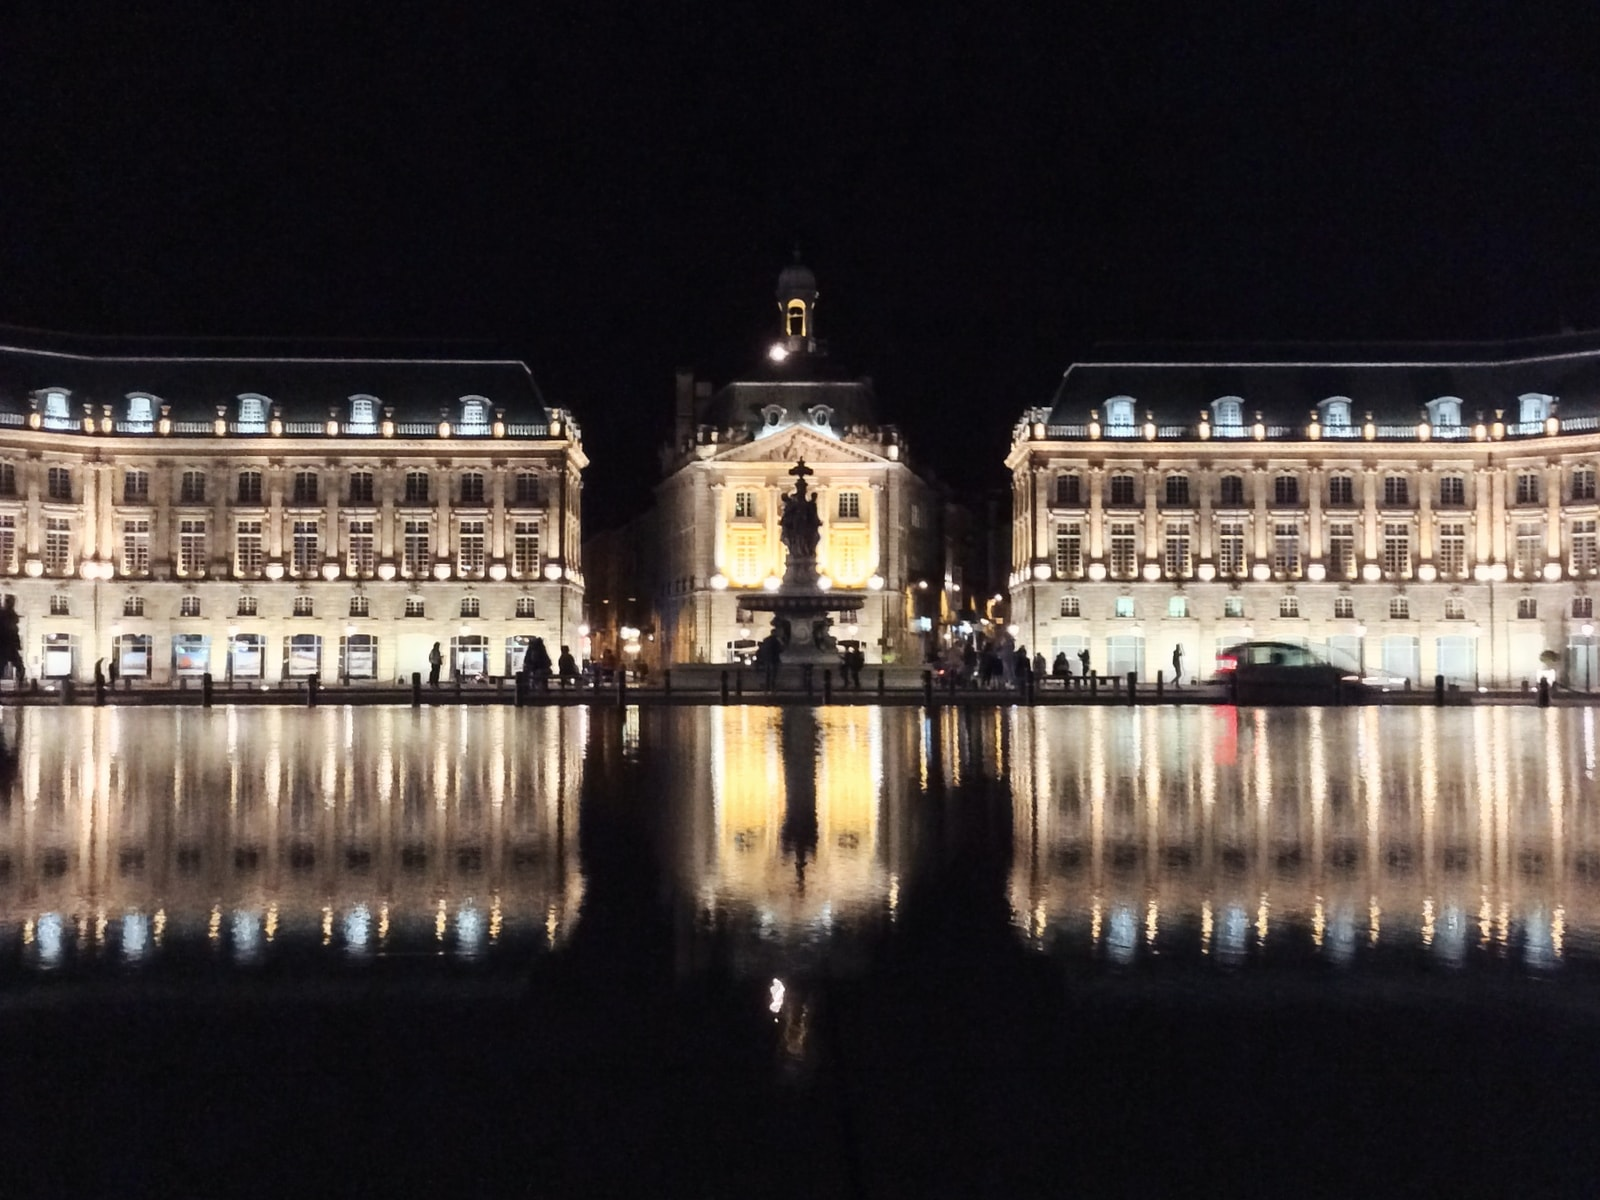 place de la bourse at night - the 18th century palace and its reflection in a pool of water at night